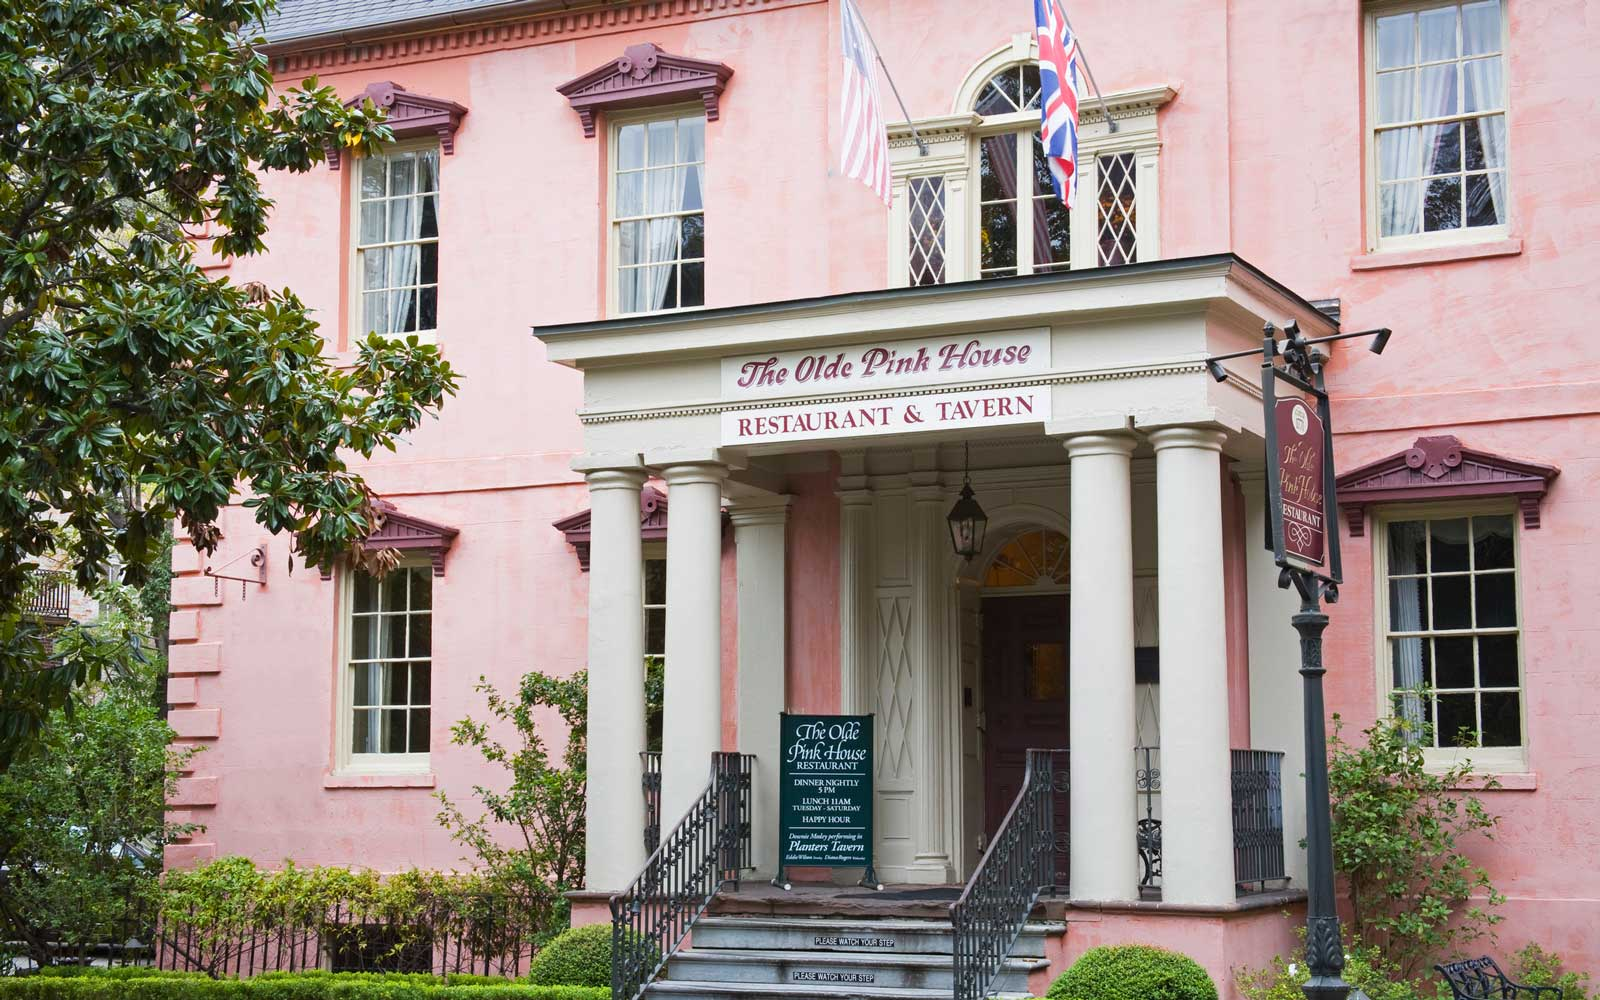 The Olde Pink House Restaurant, Reynolds Square, Savannah, Georgia